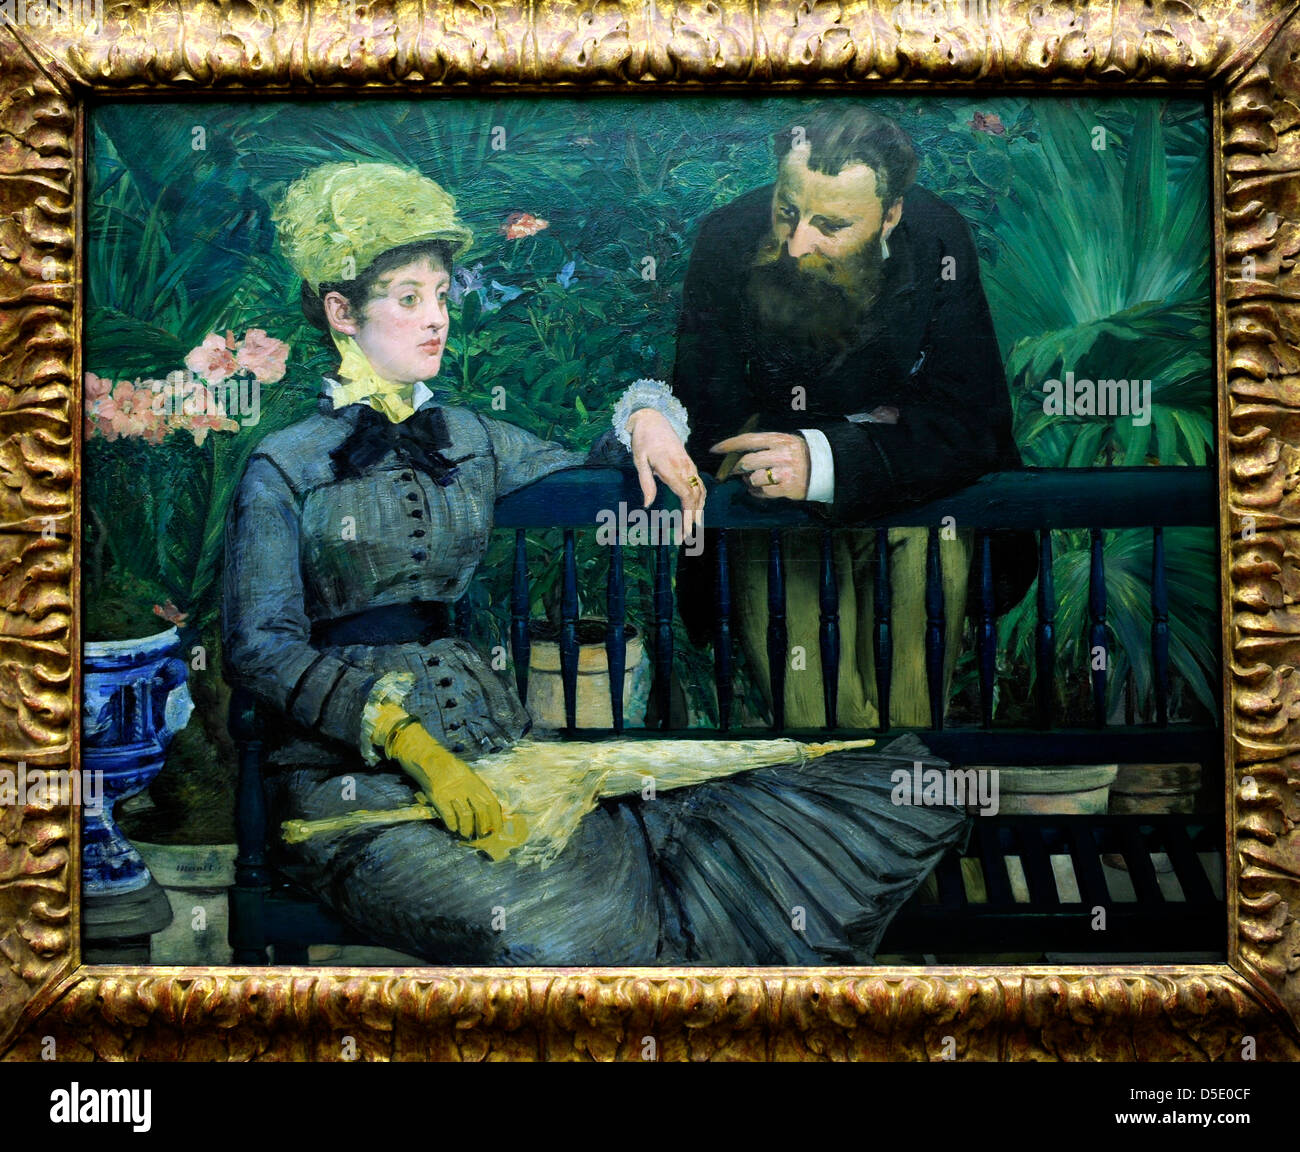 Edouard Manet 'In the Conservatory' 1879 Alte Nationalgalerie Berlin - Stock Image